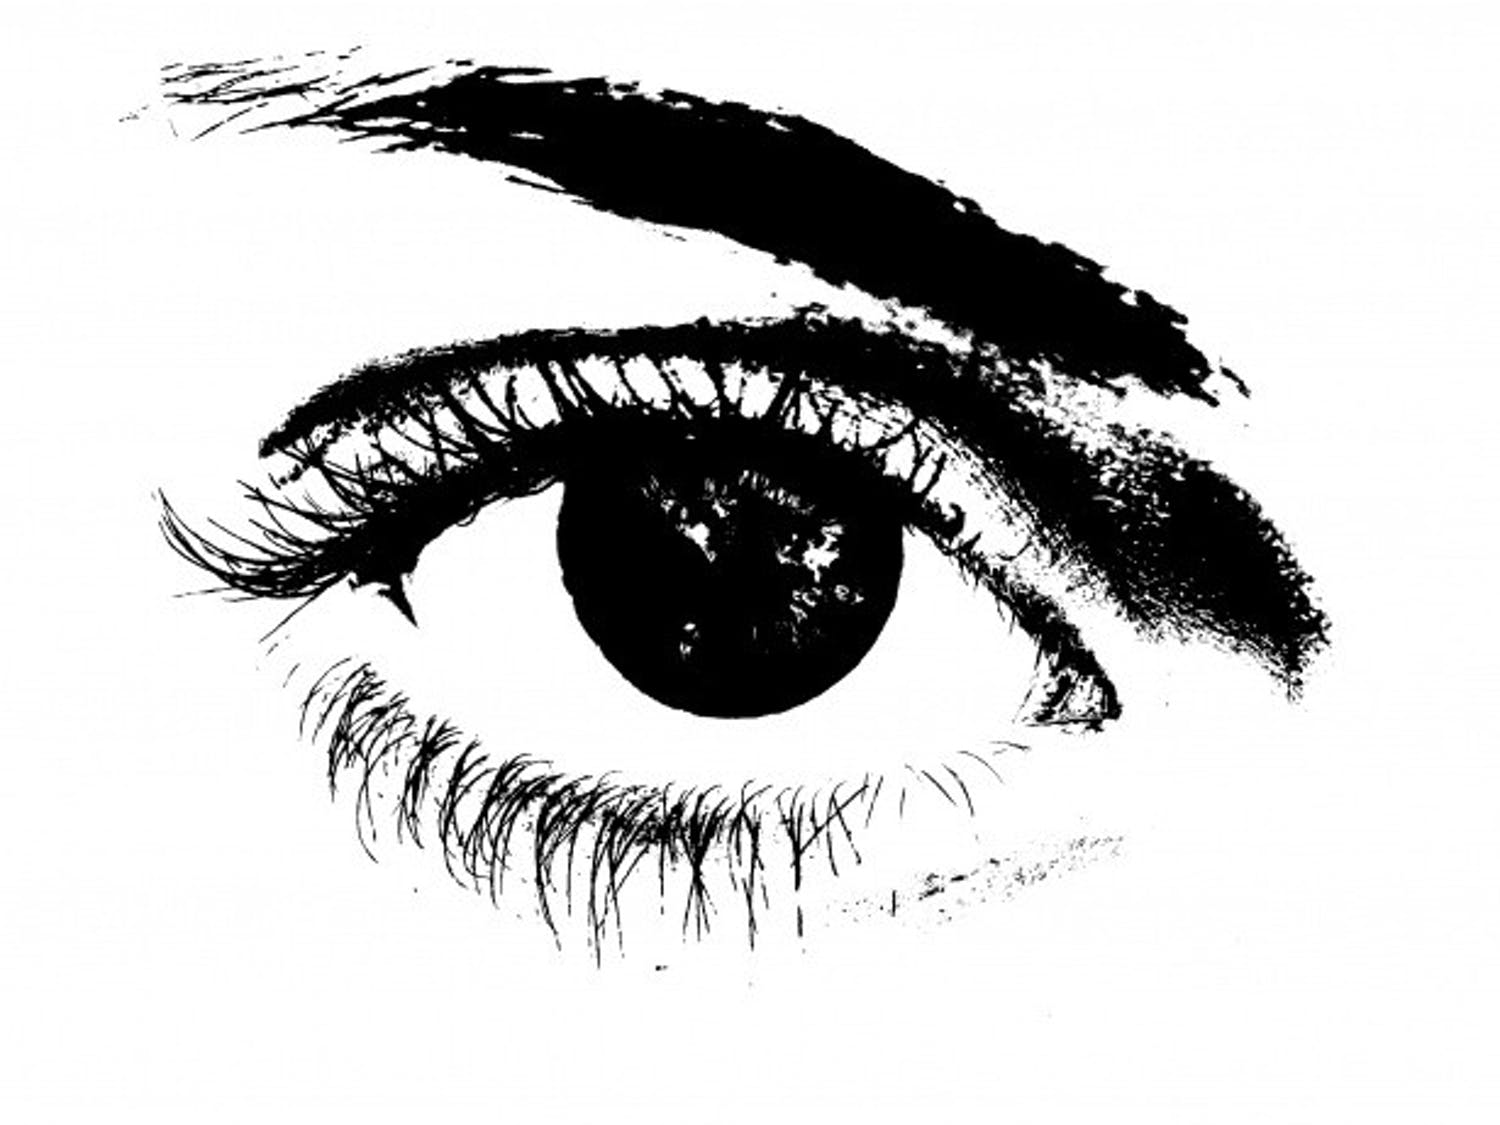 eye-illustration-clipart.jpg